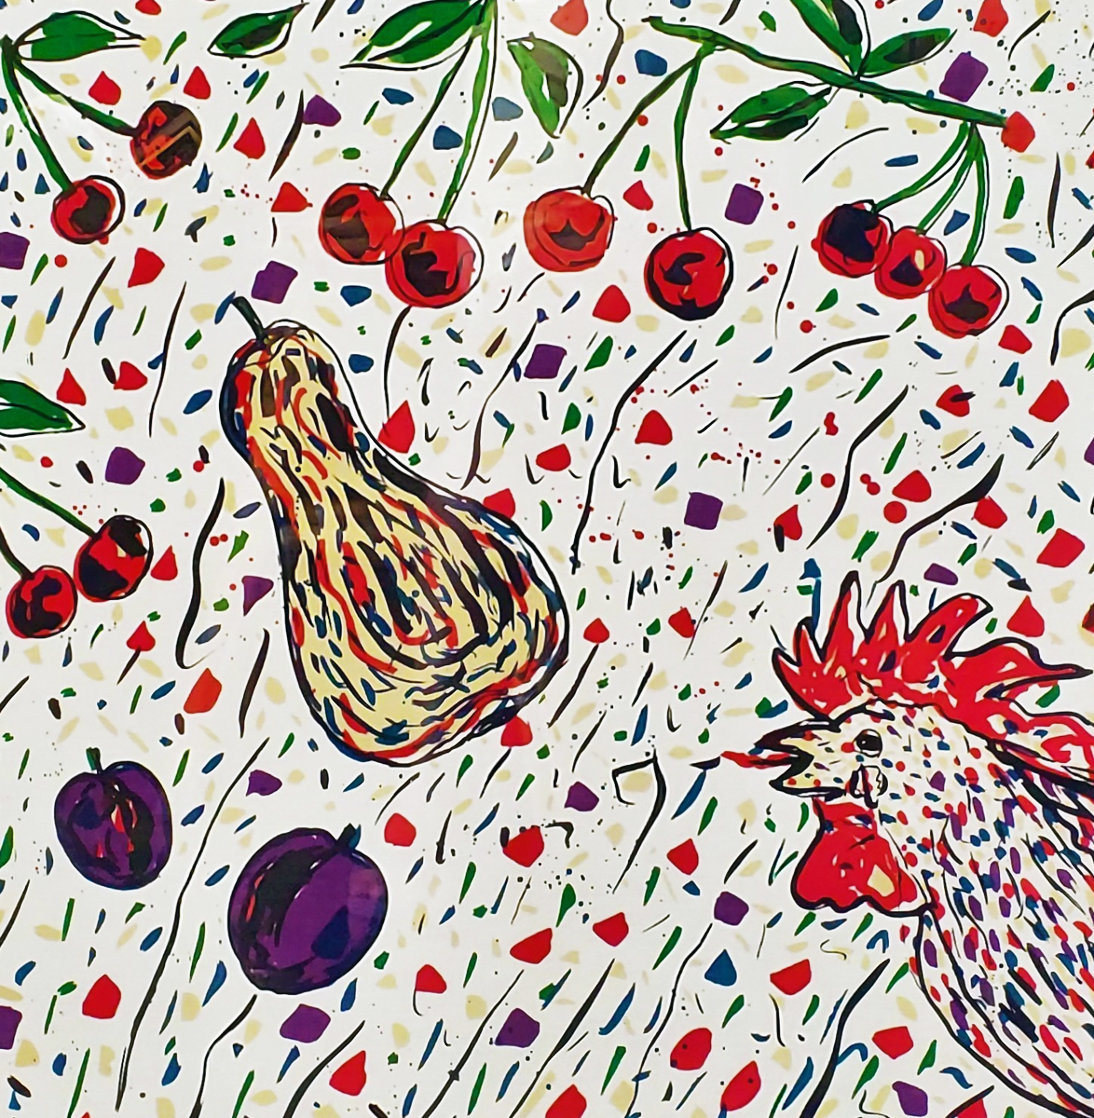 Cock and Cherries 1990 Limited Edition Print by Italo Scanga